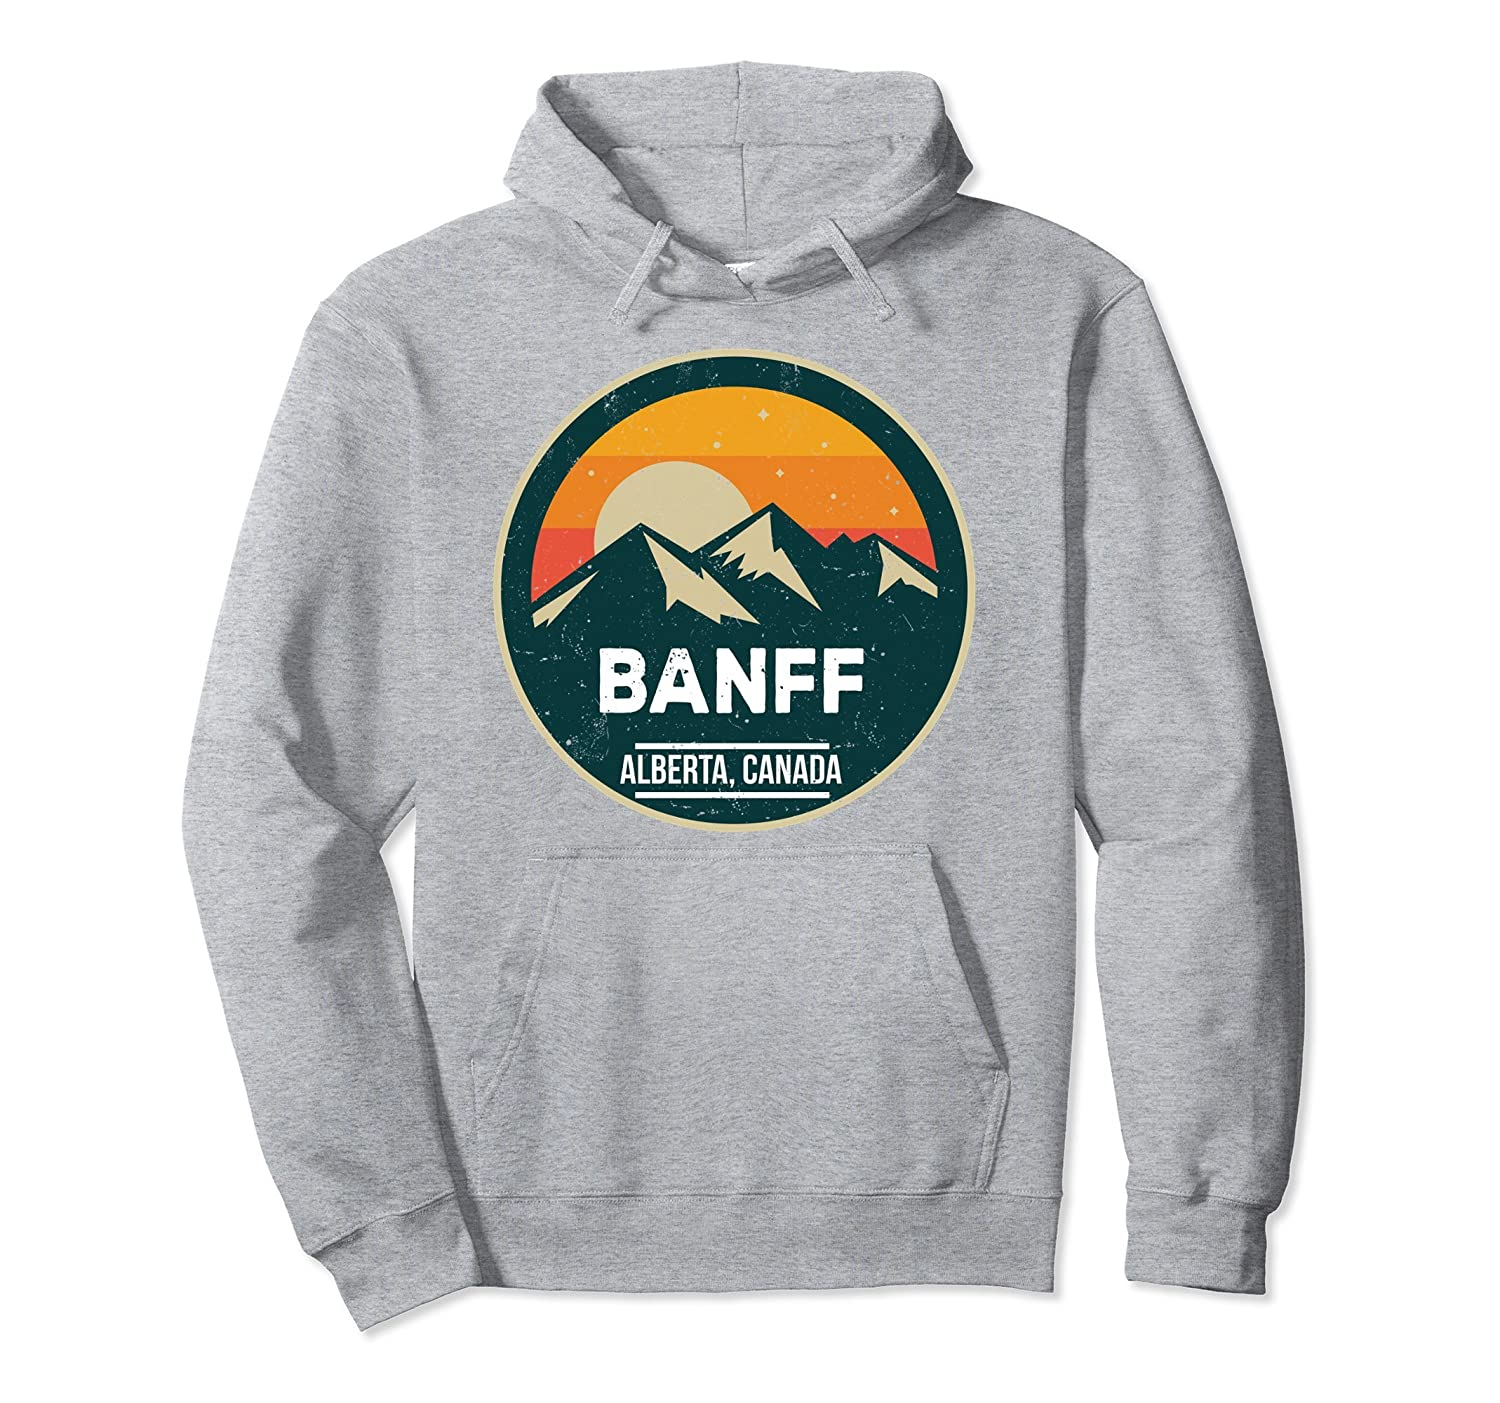 BANFF Alberta Canada Mountains National Park Sweatshirt-ah my shirt one gift